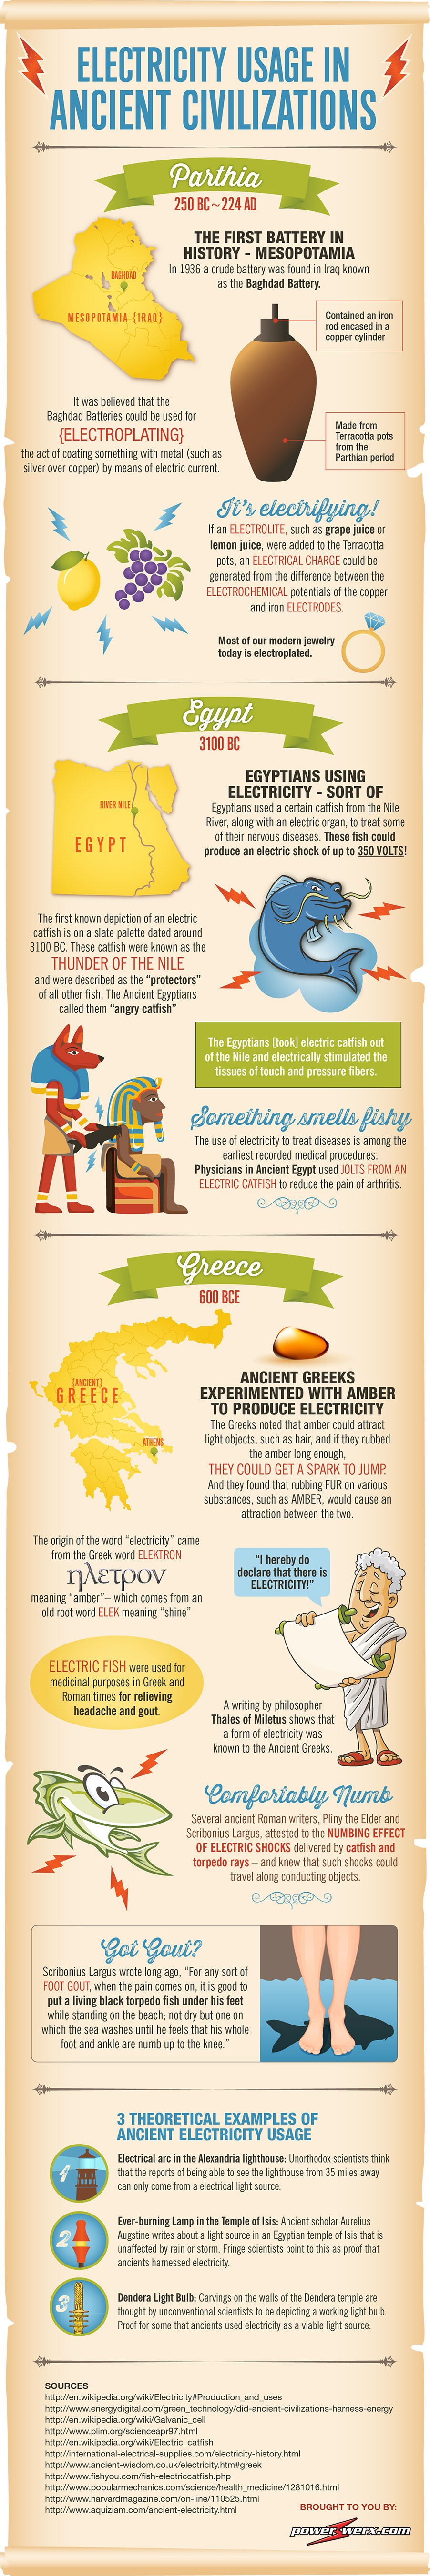 electricity-usage-in-ancient-civilizations_infographic